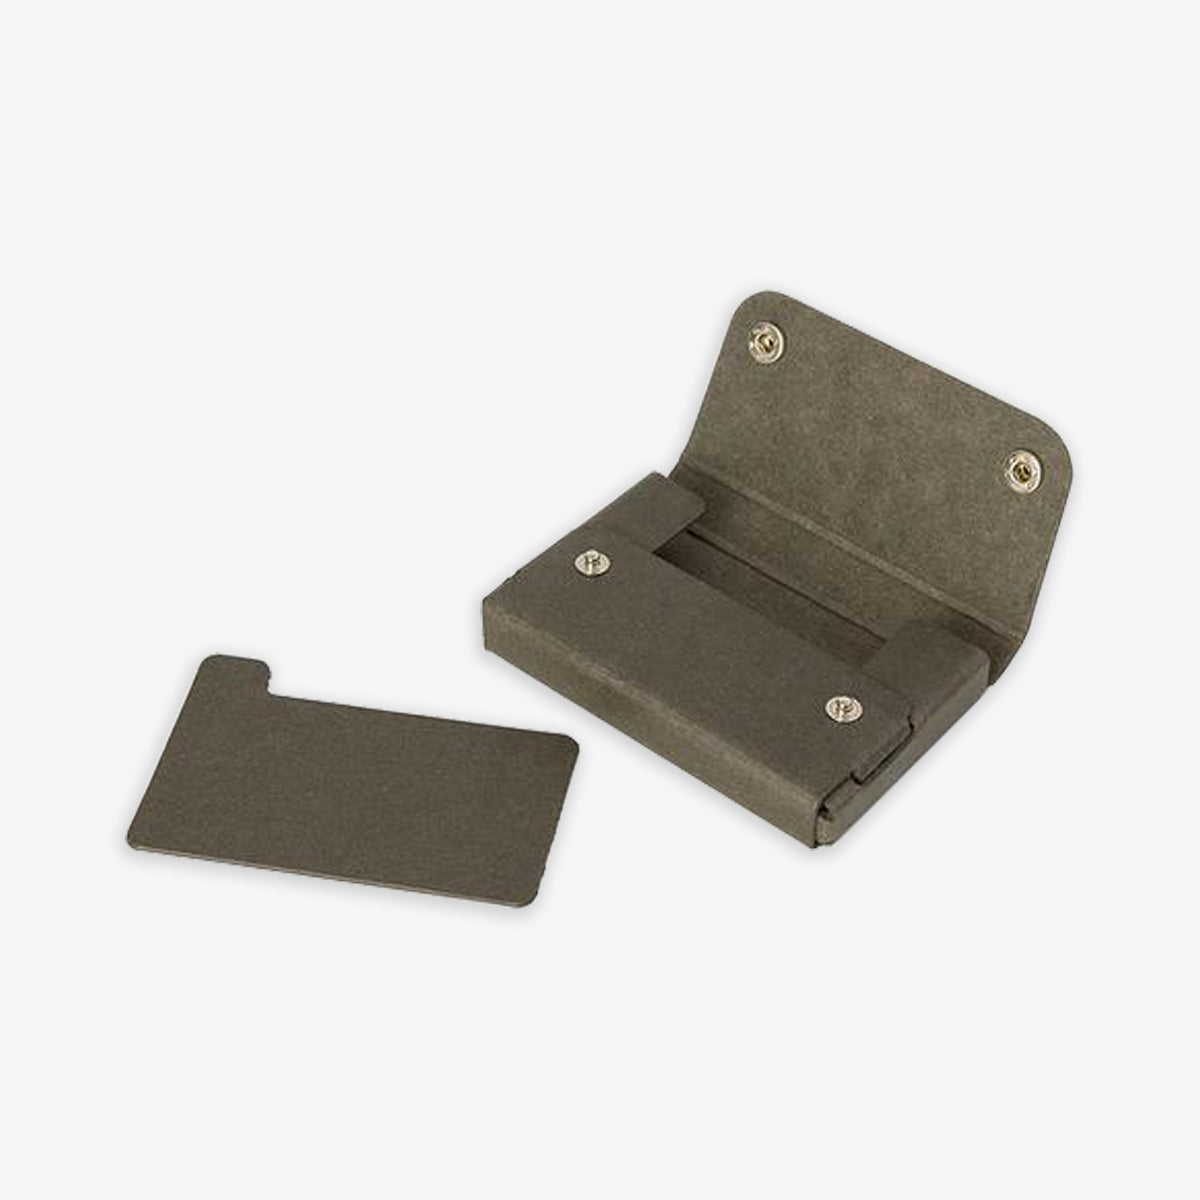 products/Midori_PS_CardCase_Pasco_Black_02.jpg